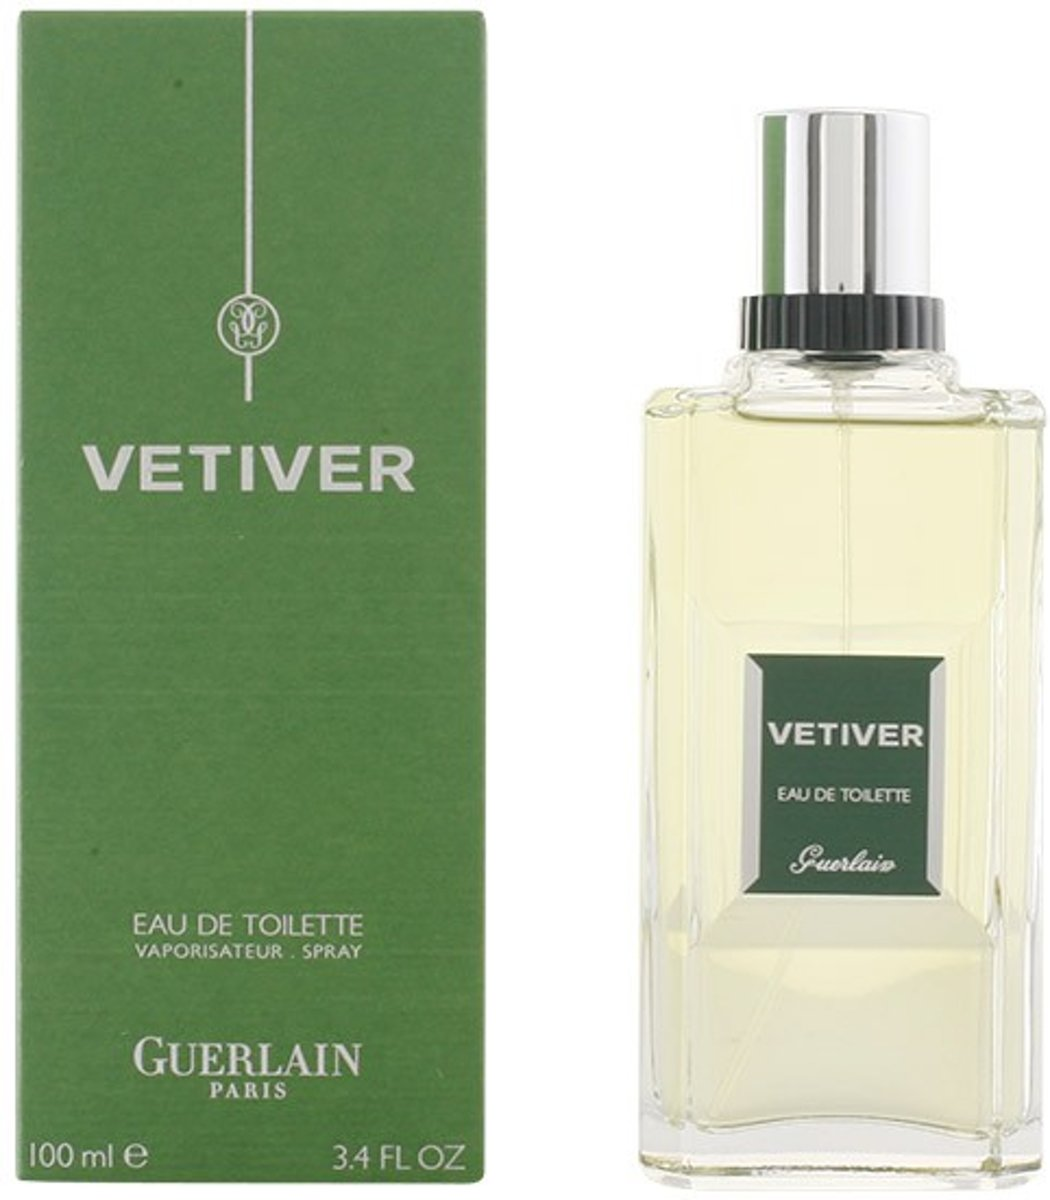 MULTI BUNDEL 2 stuks VETIVER Eau de Toilette Spray 100 ml